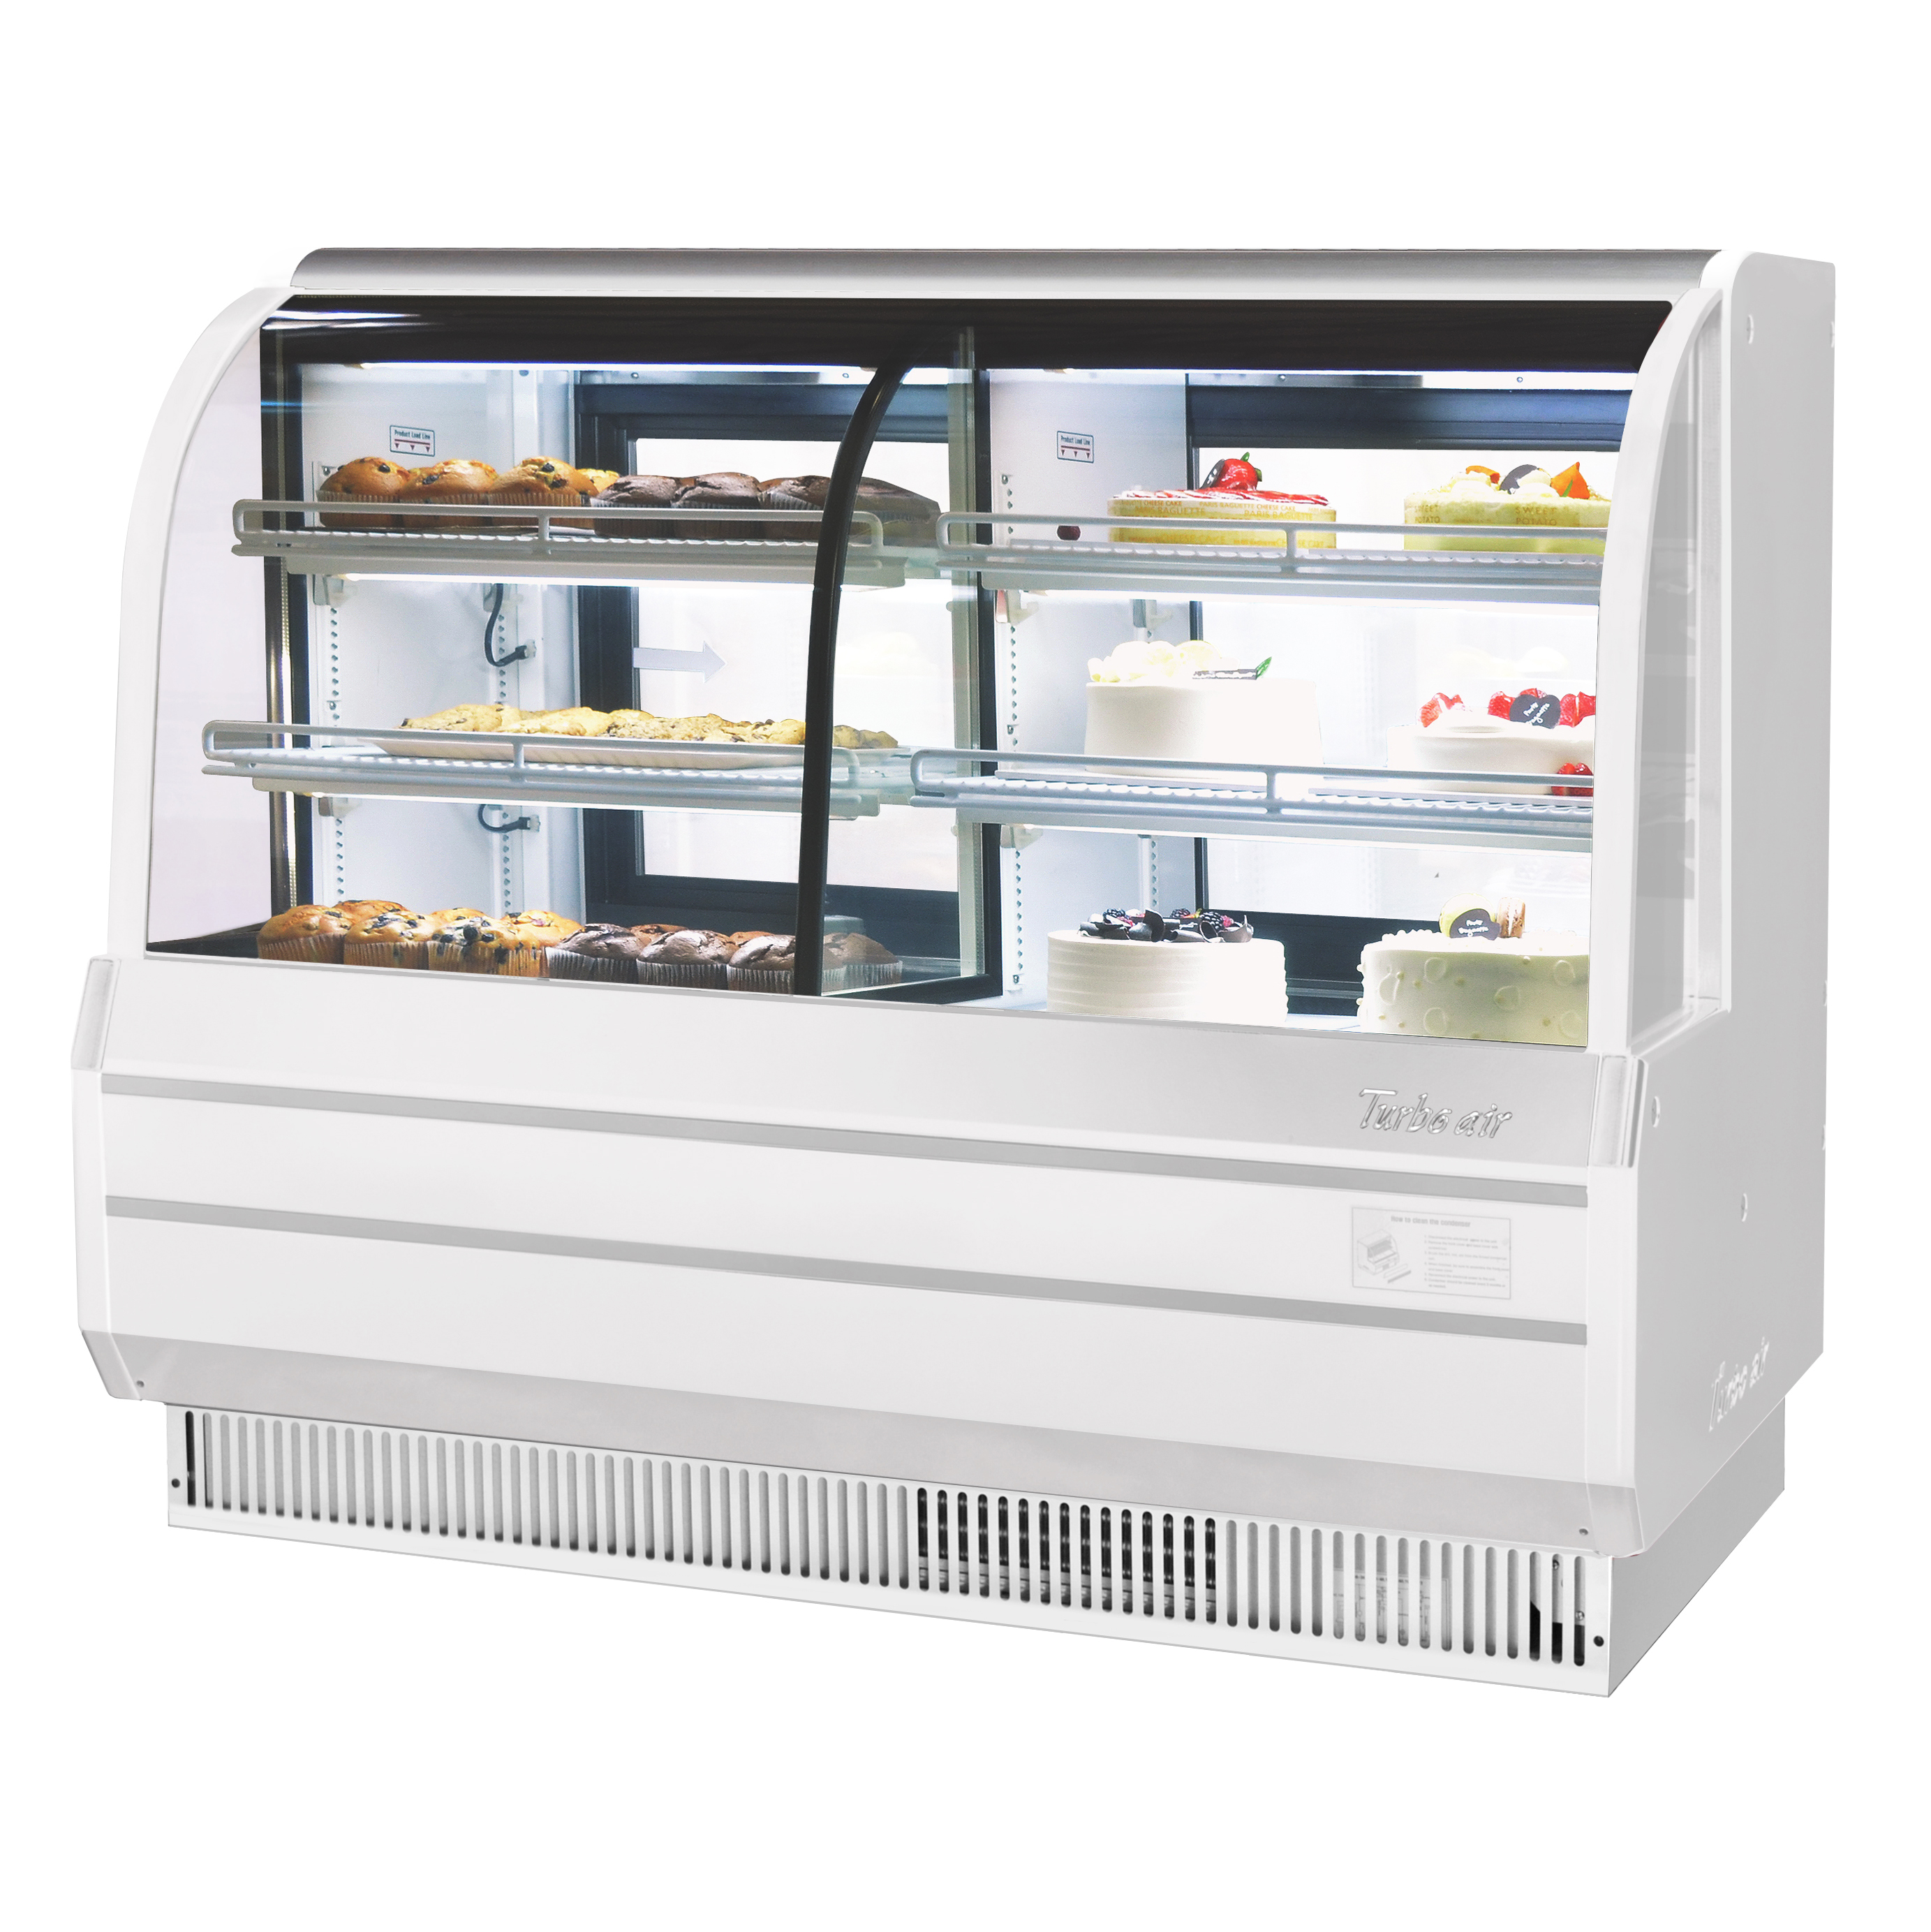 Turbo Air TCGB-72CO-W(B)-N display case, refrigerated bakery